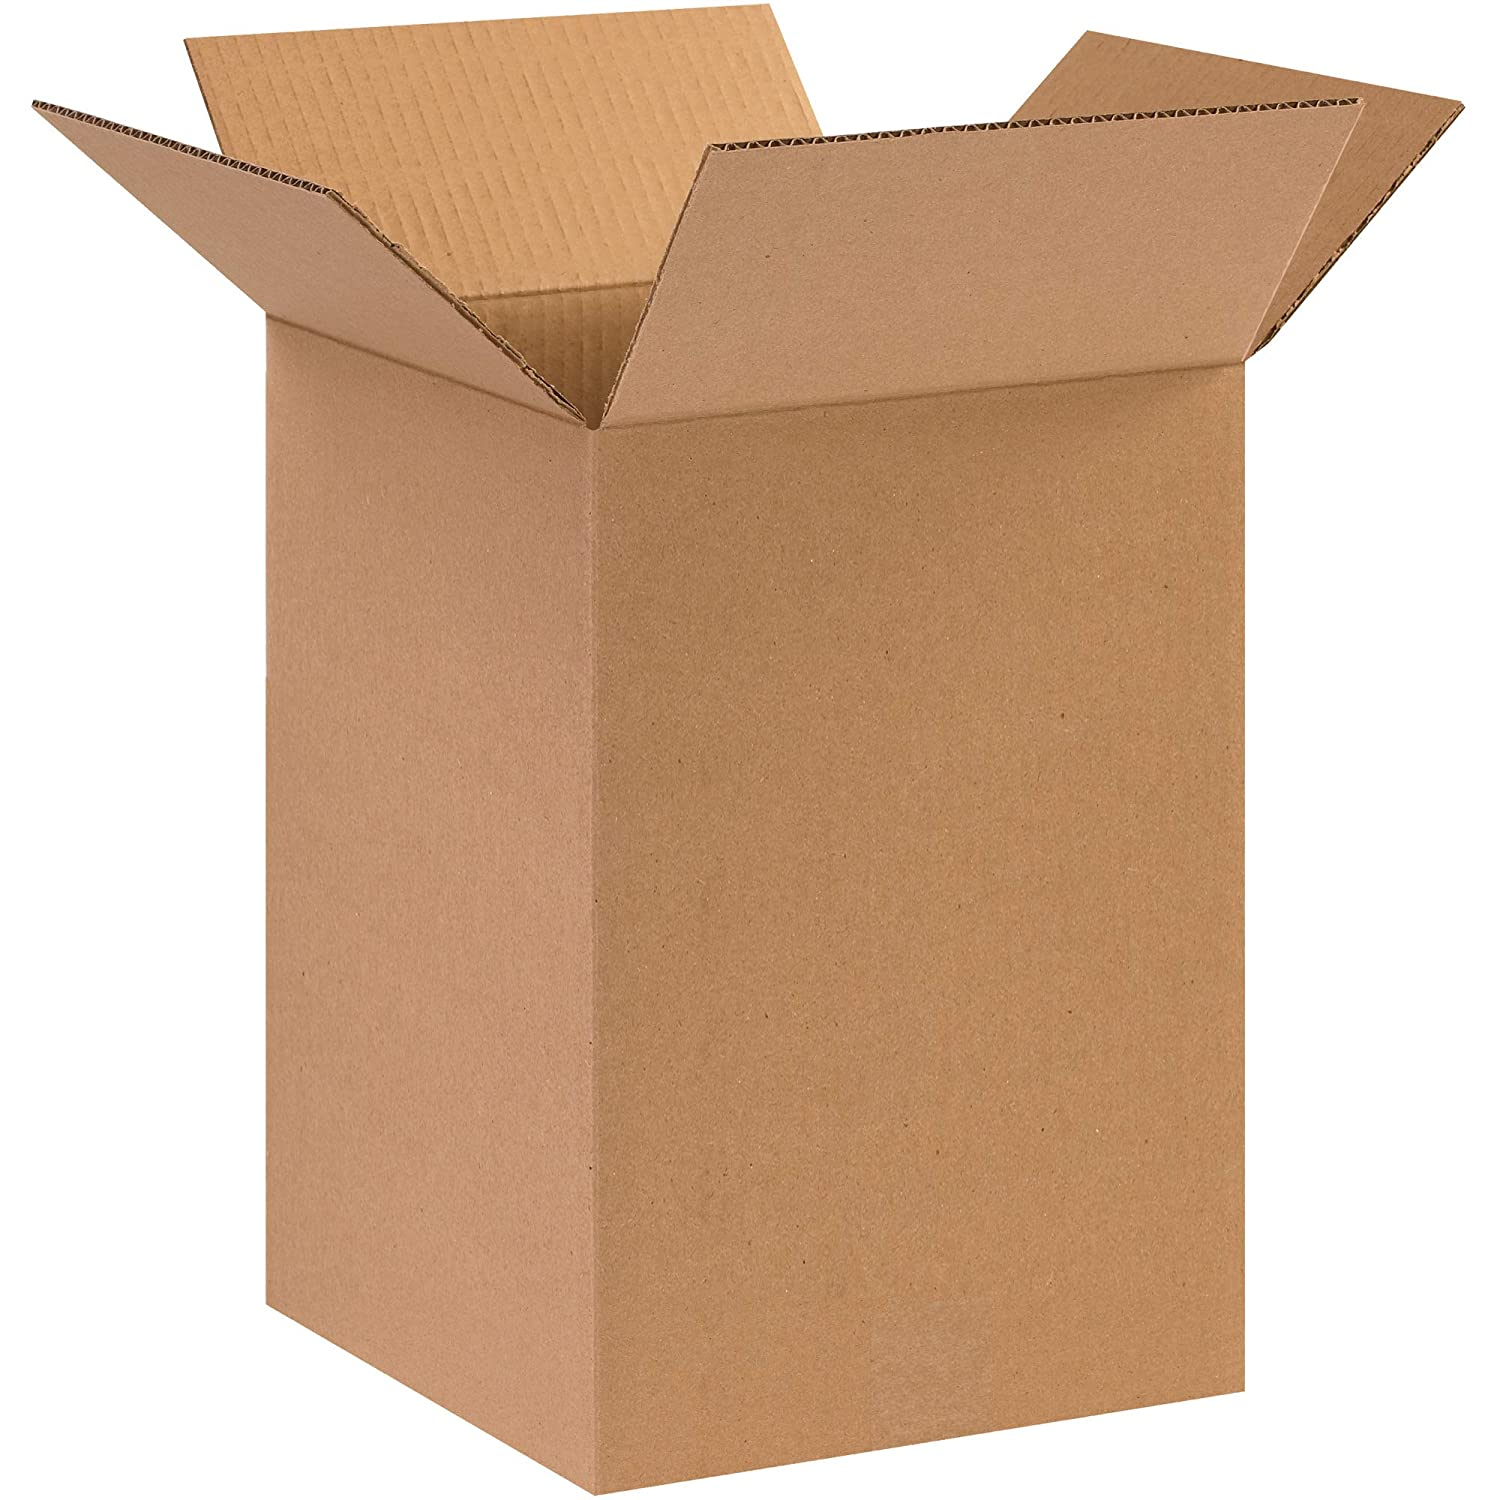 Latest item Corrugated Boxes 5 ☆ very popular 10